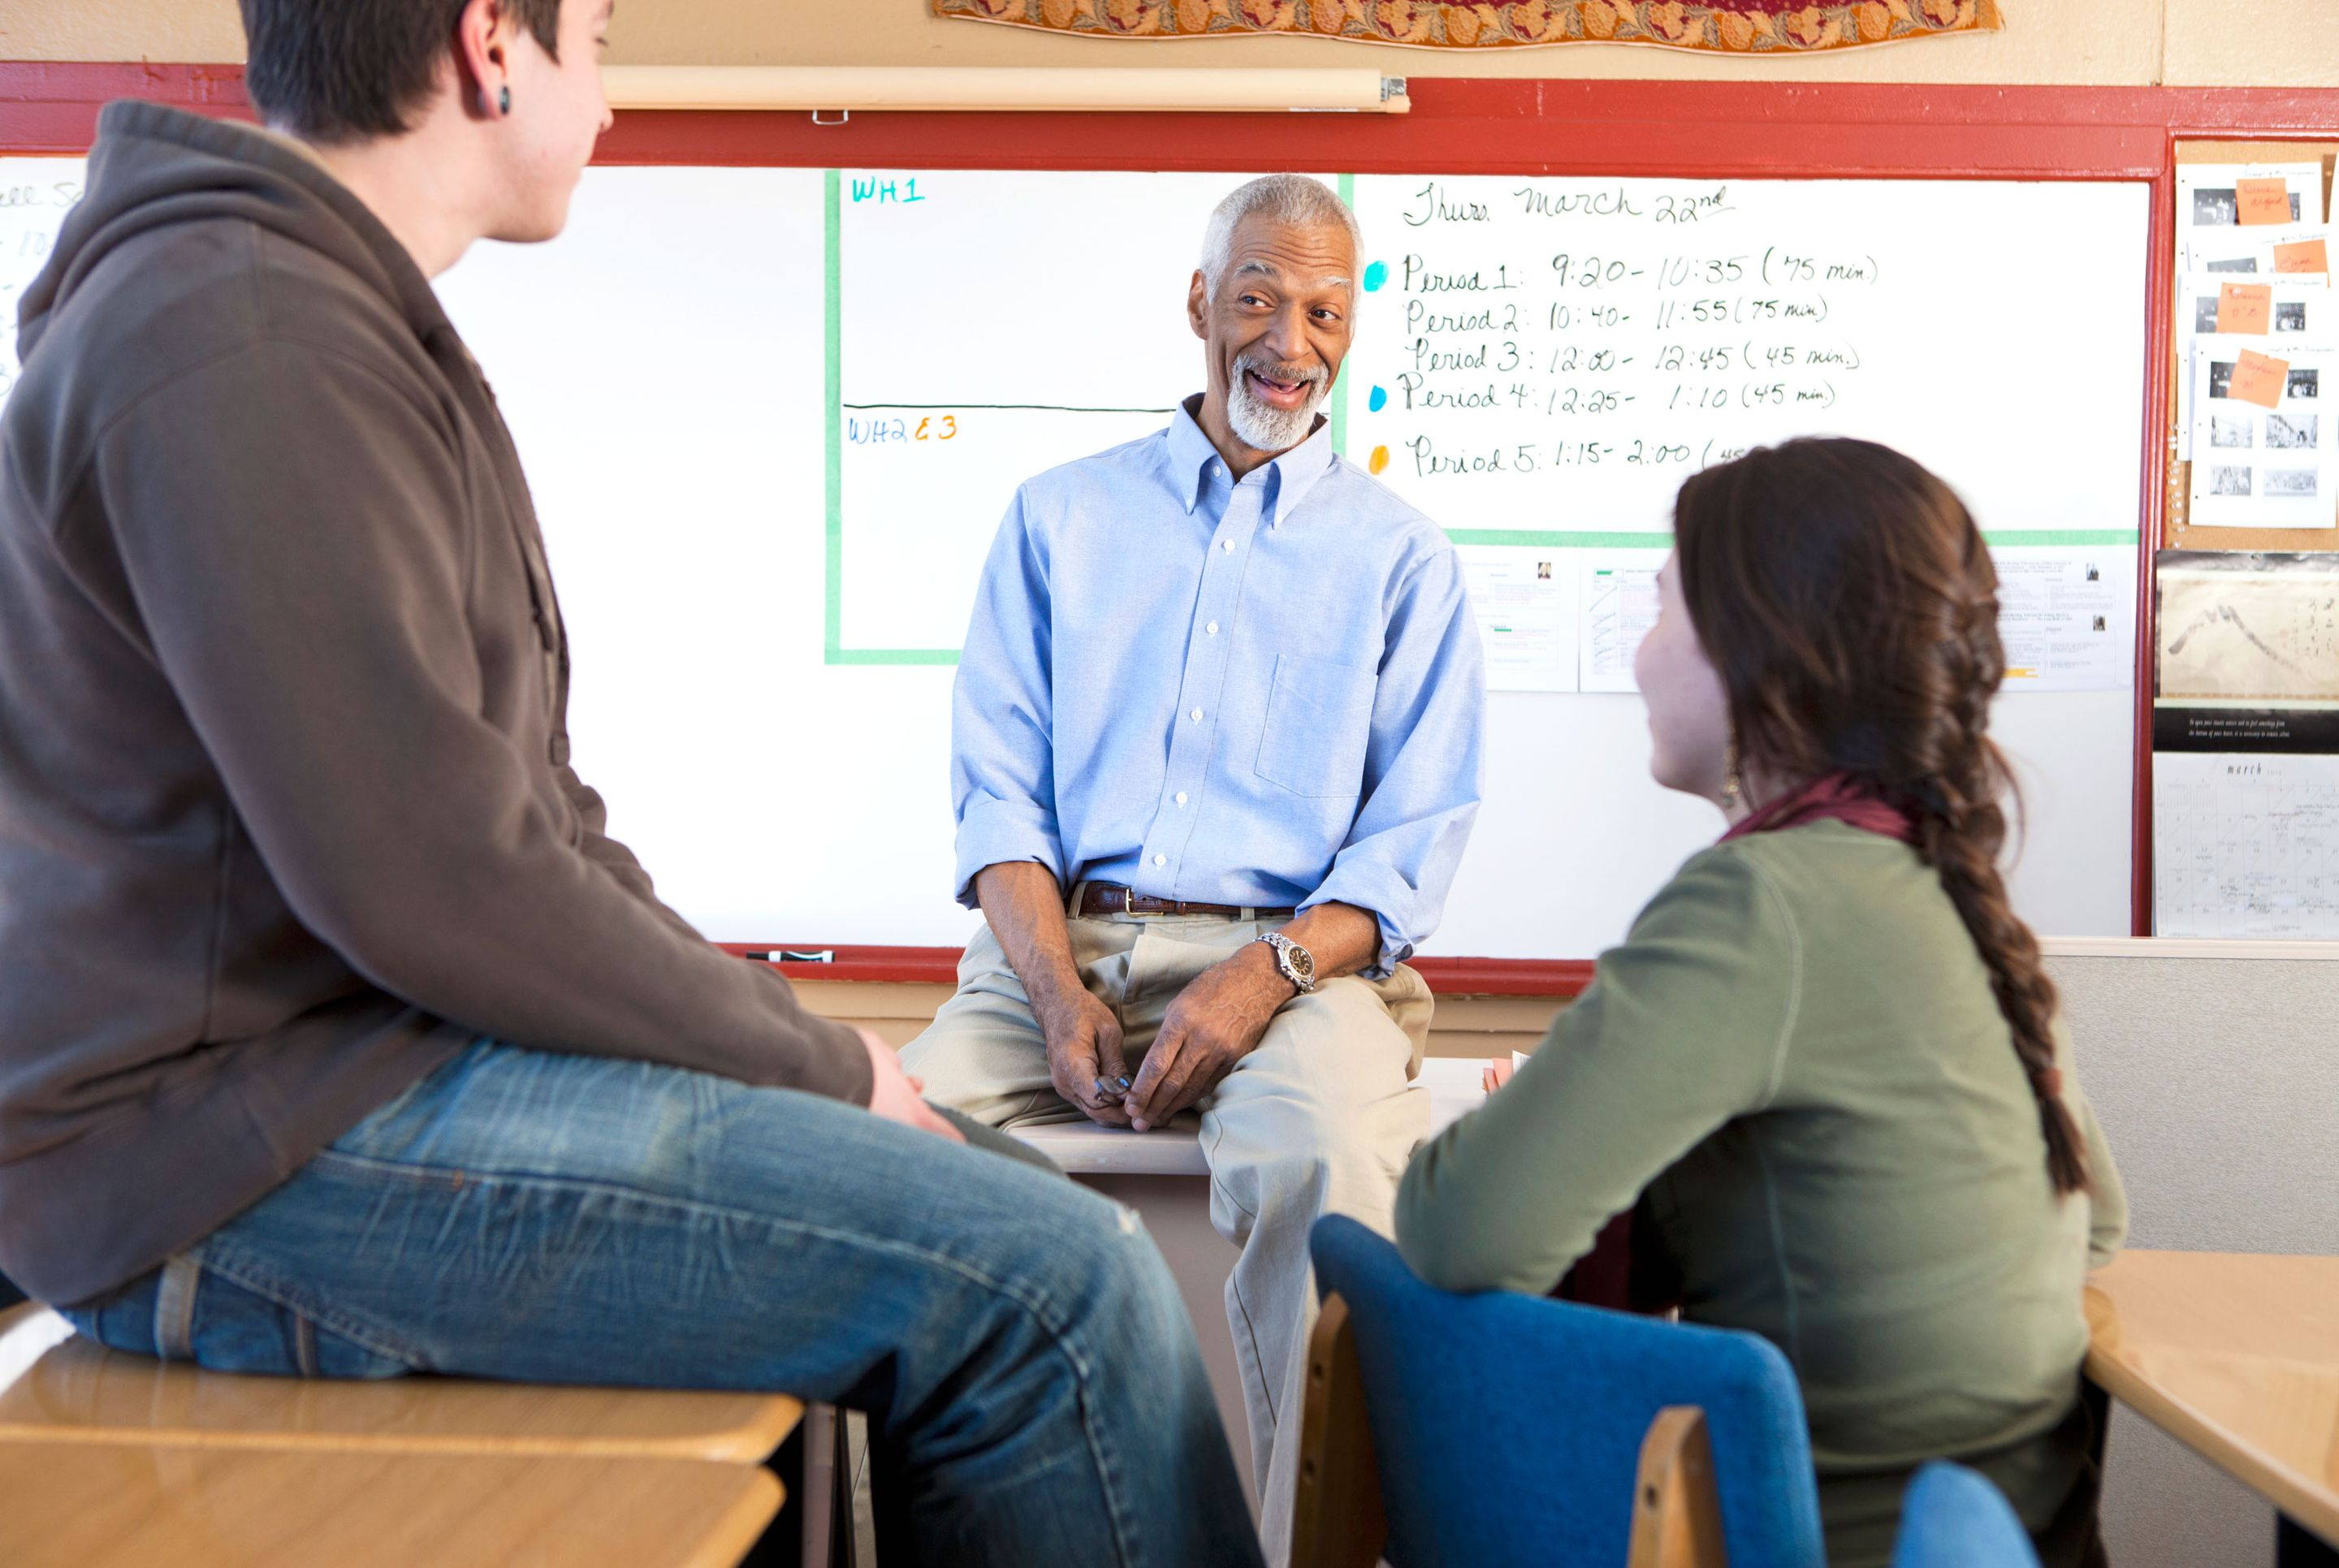 Teacher and students talking in the classroom.